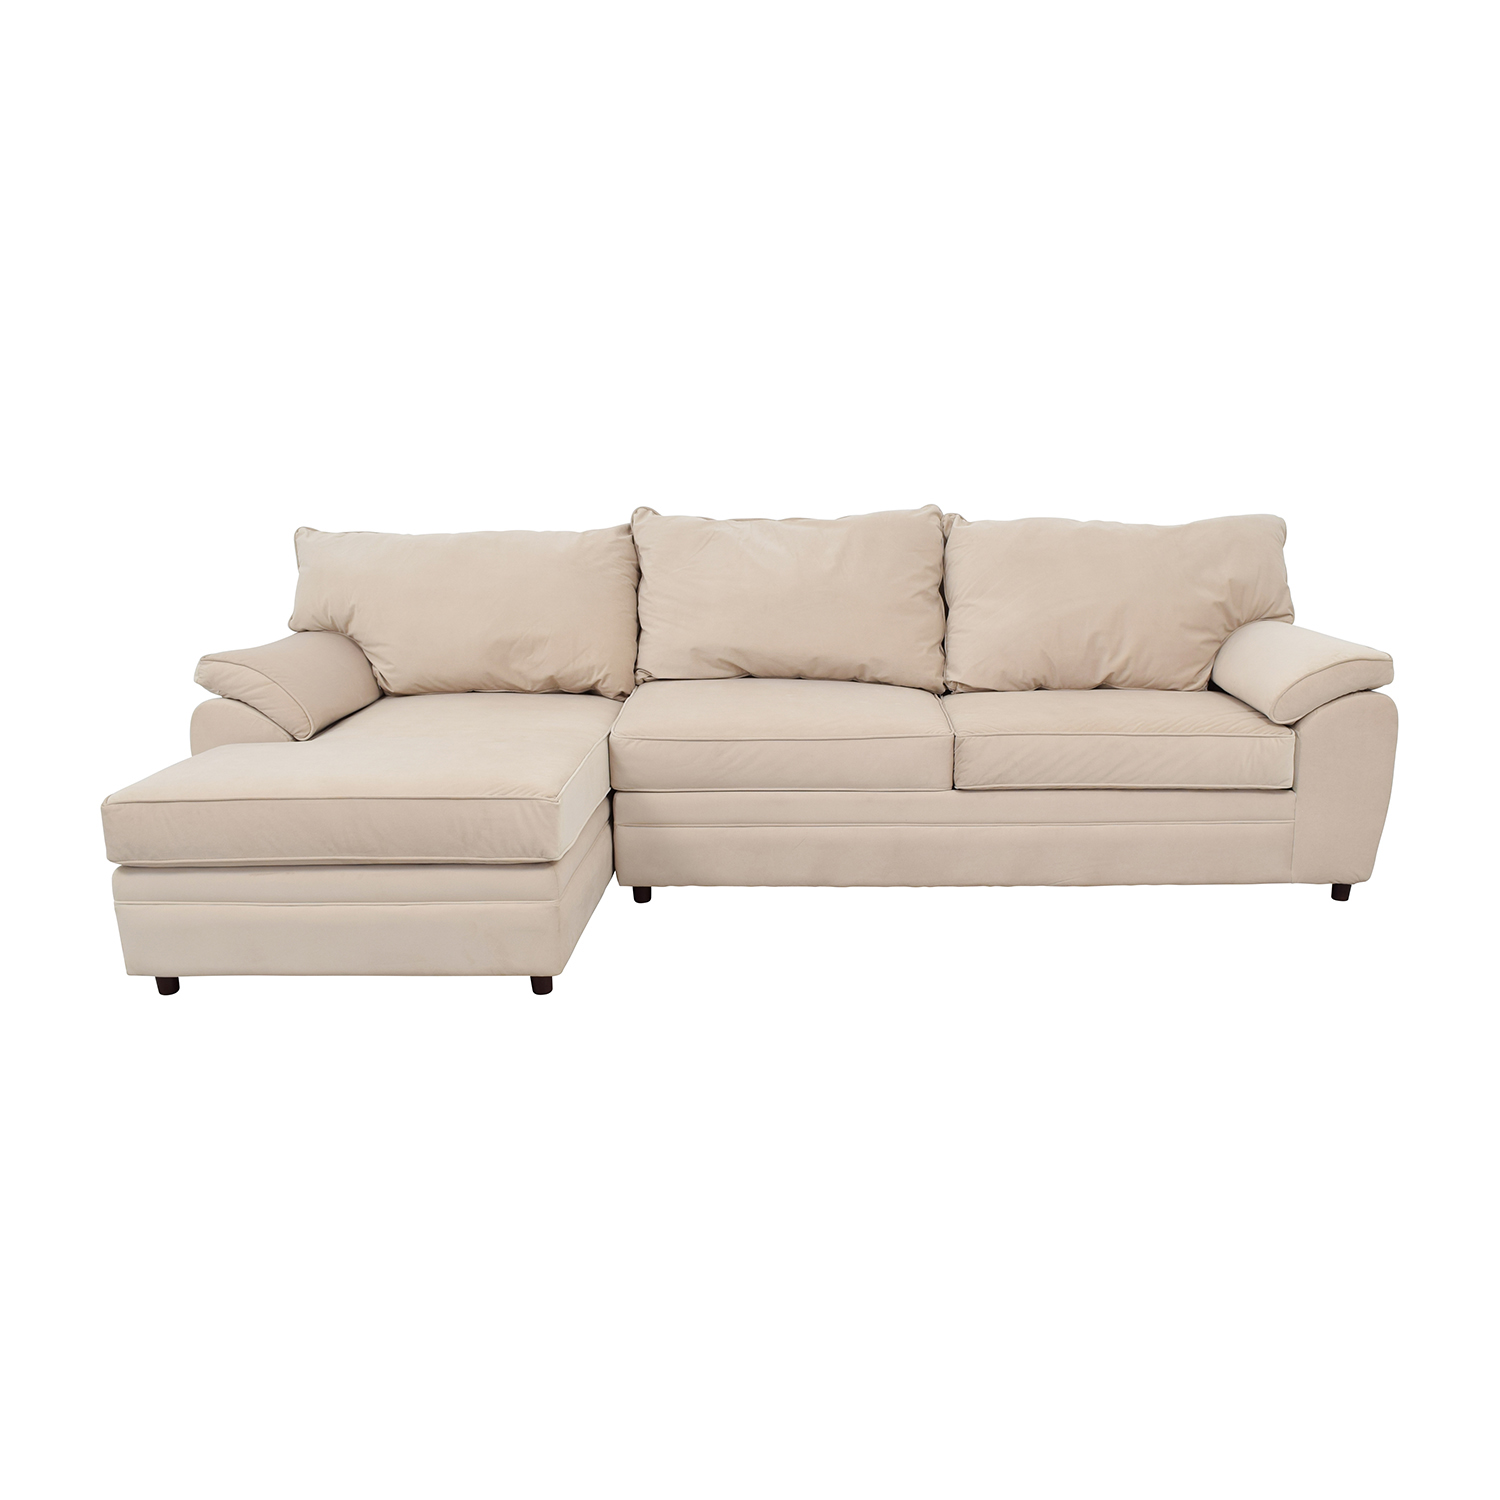 Bobs Furniture Bob Furniture Off-White Right Chaise Sectional coupon